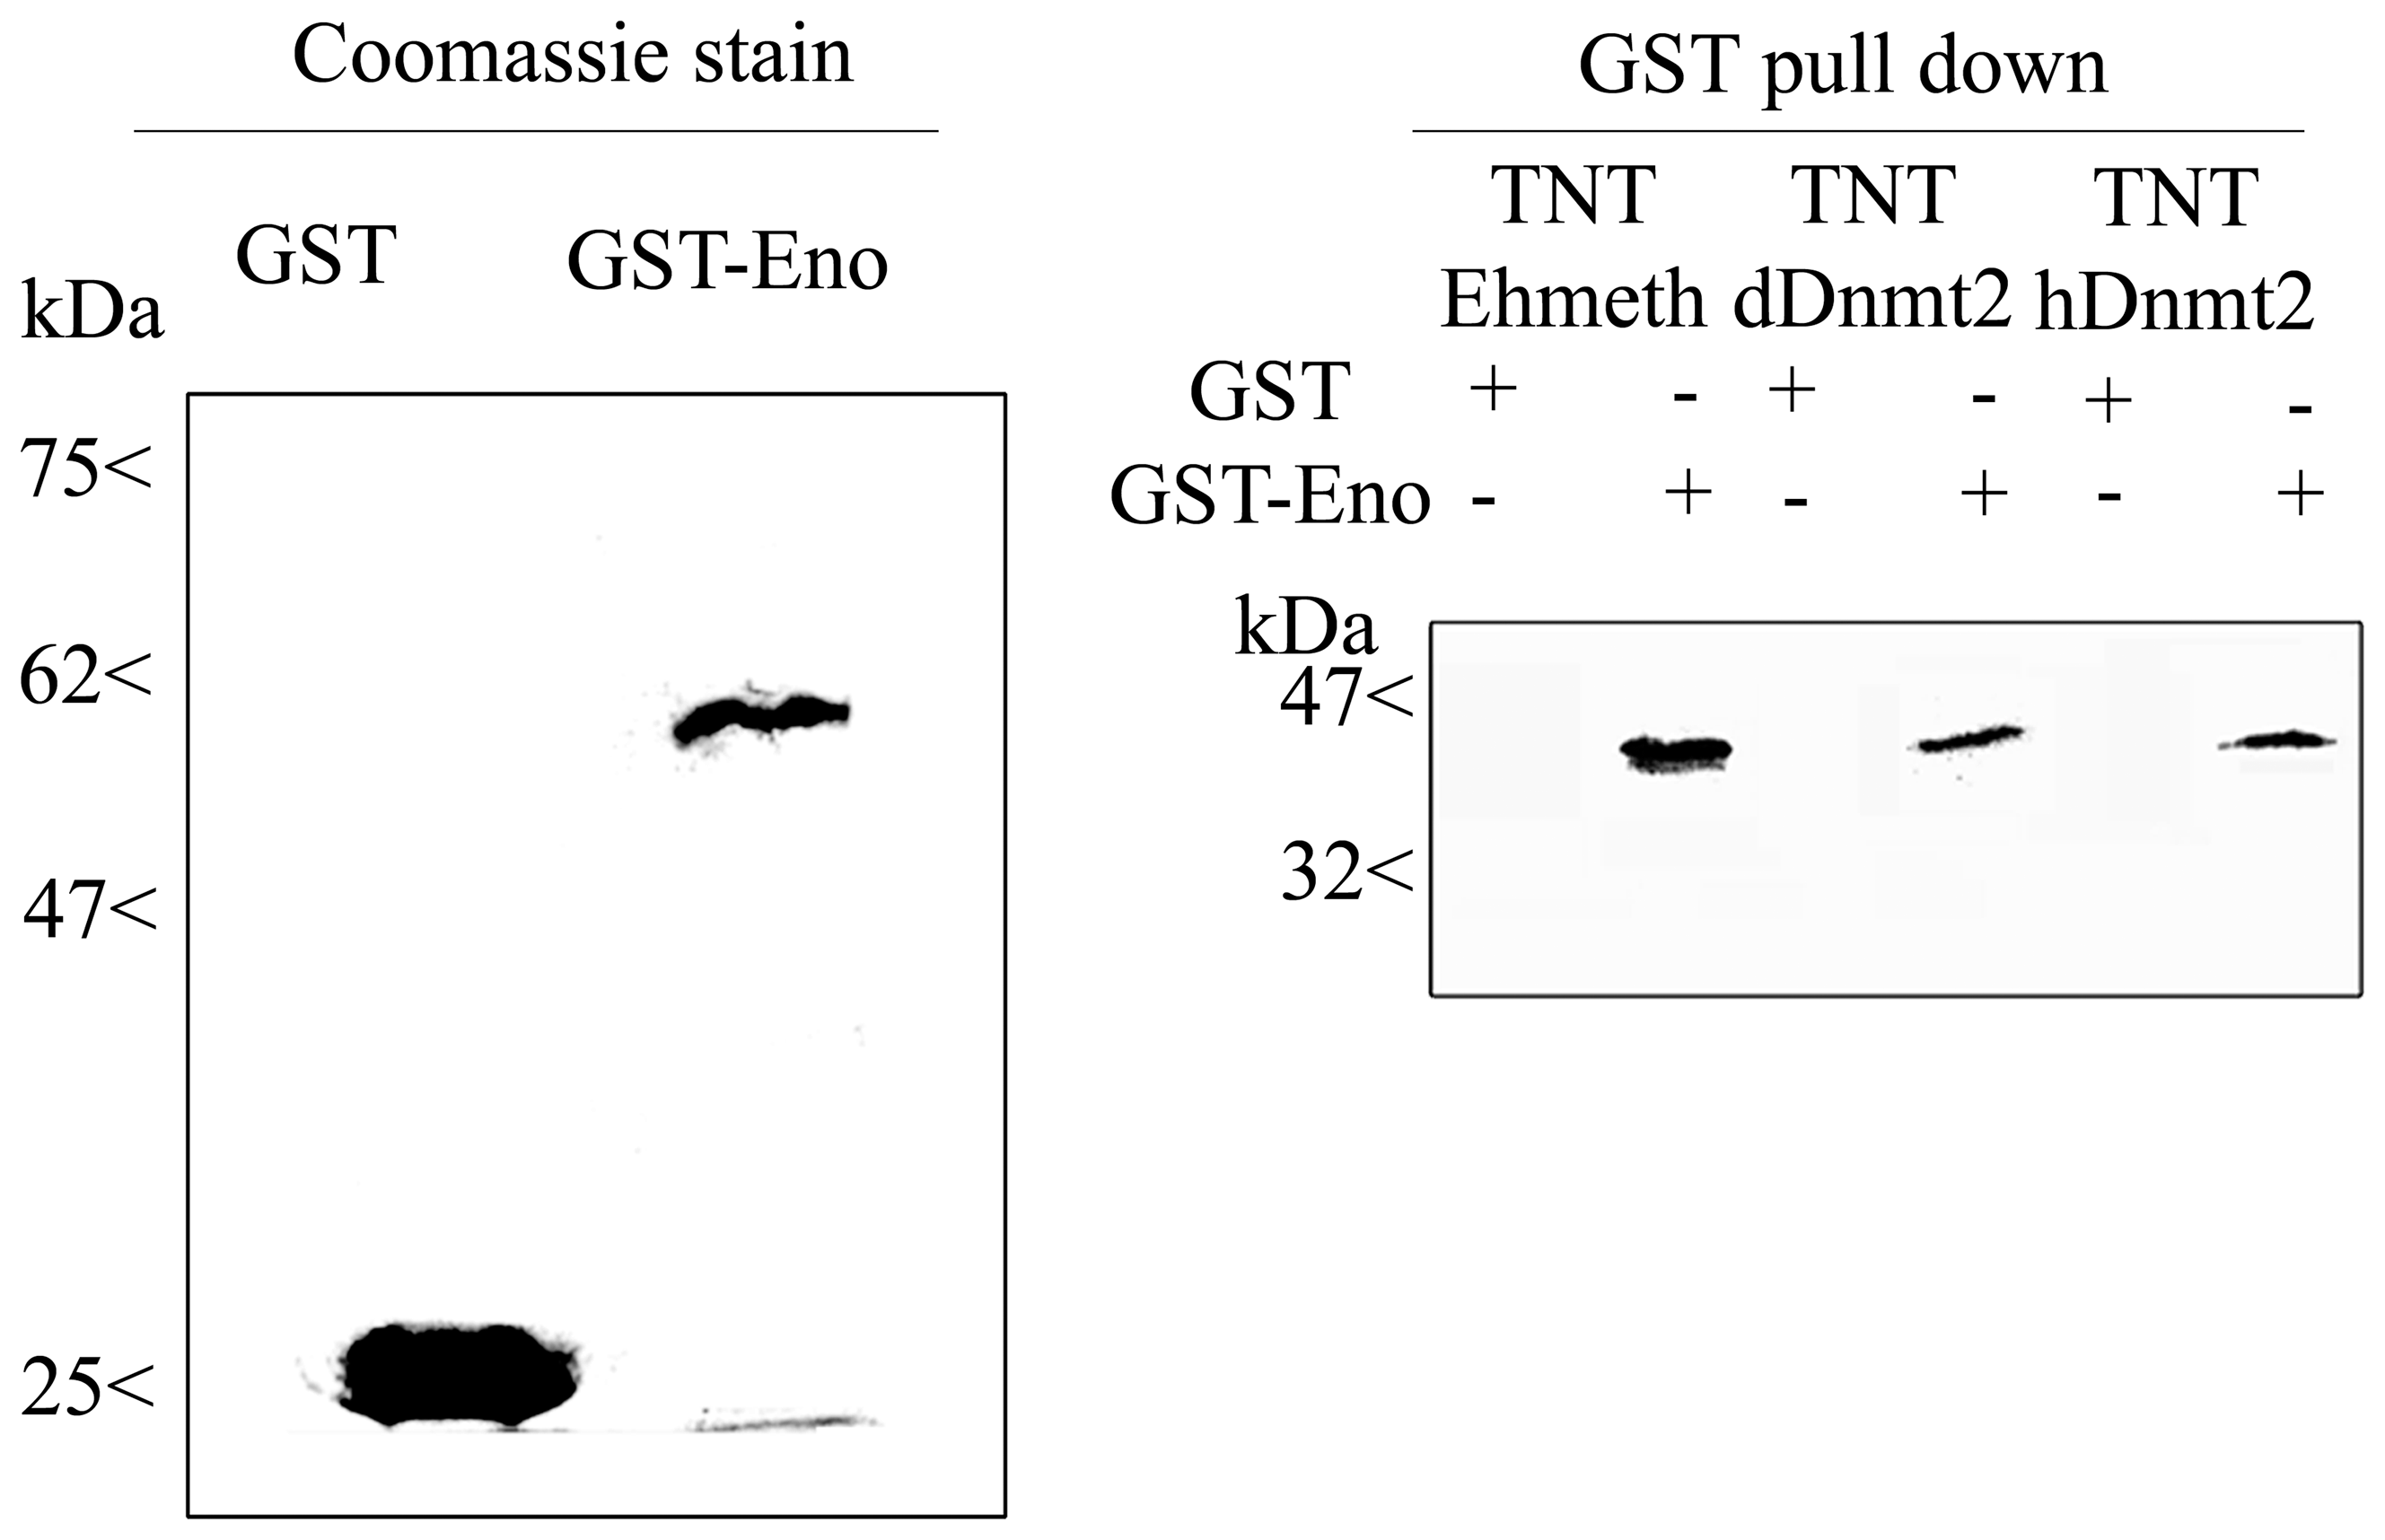 <i>In vitro</i> interaction between Ehmeth, dDnmt2, hDnmt2 and enolase.